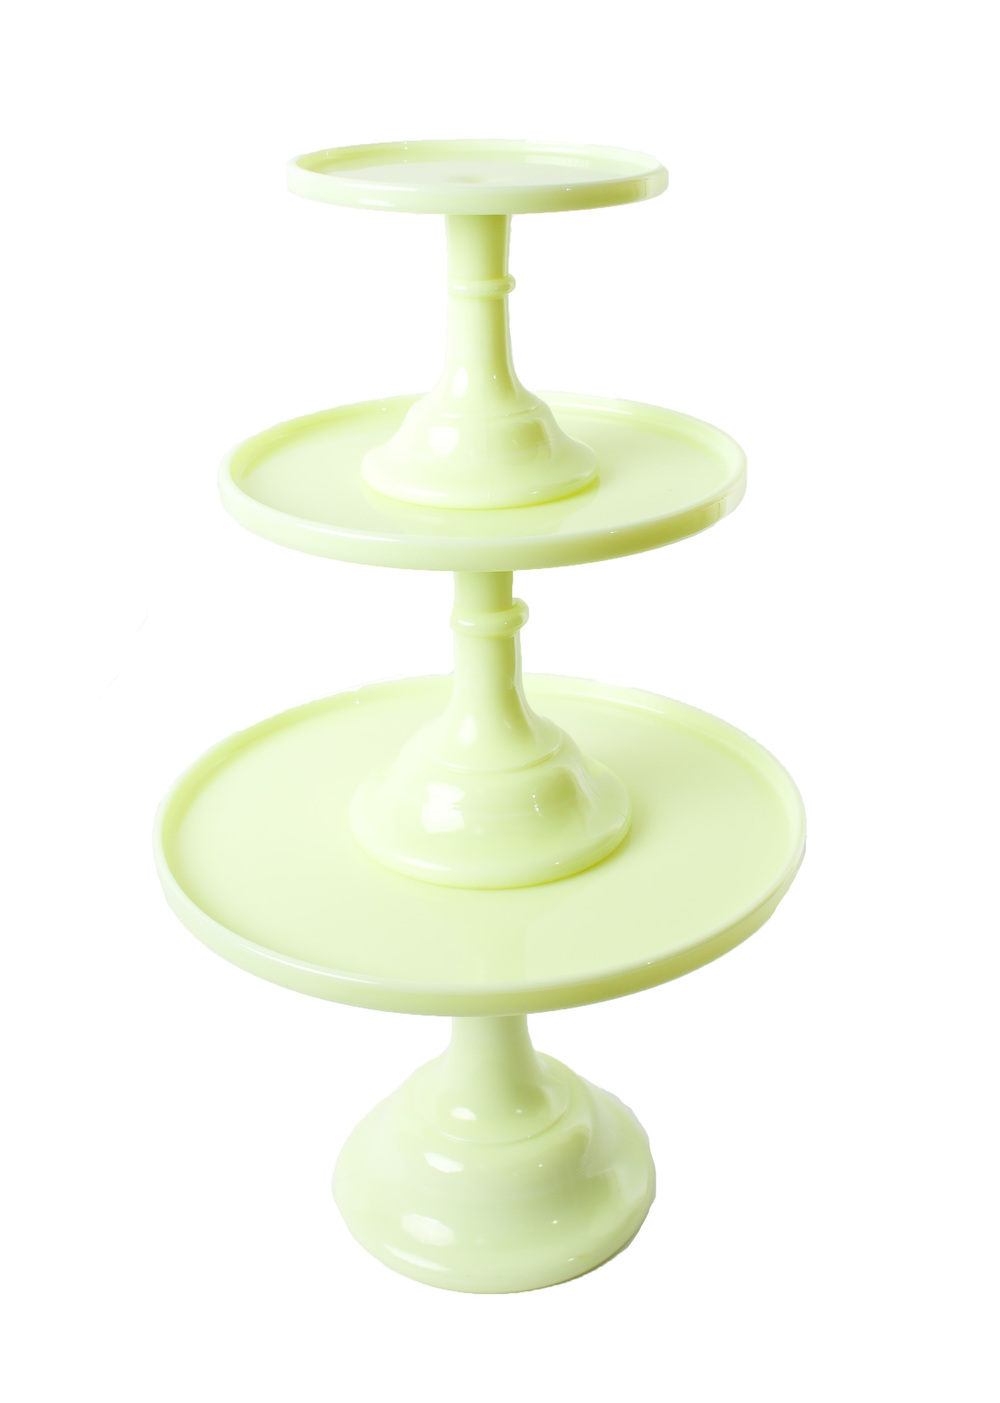 'Butter Cream' Cake Stands (shown stacked)